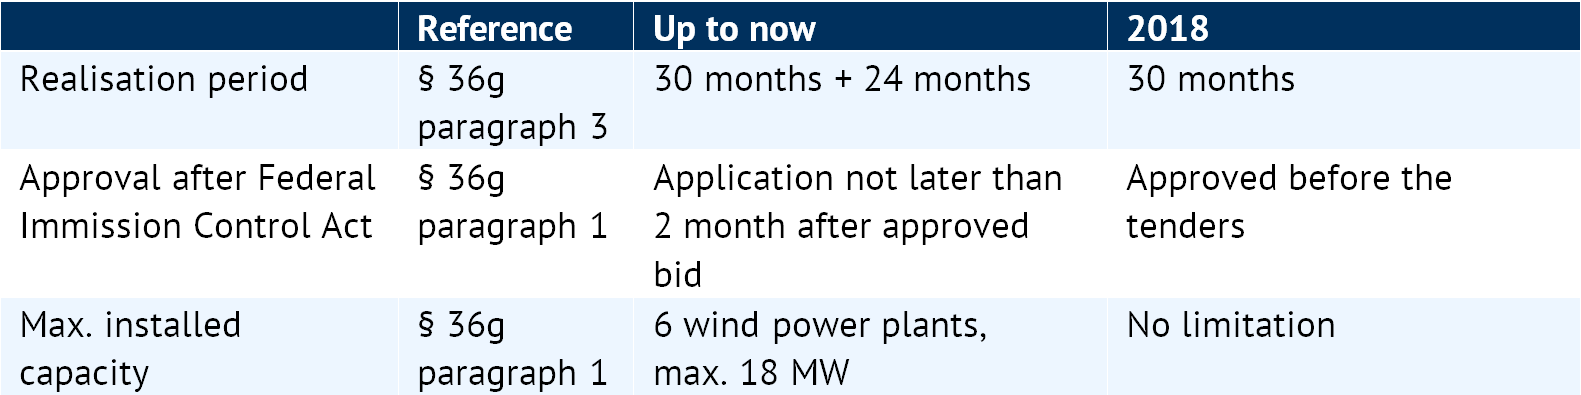 Tender conditions for citizen energy companies from 2018 on